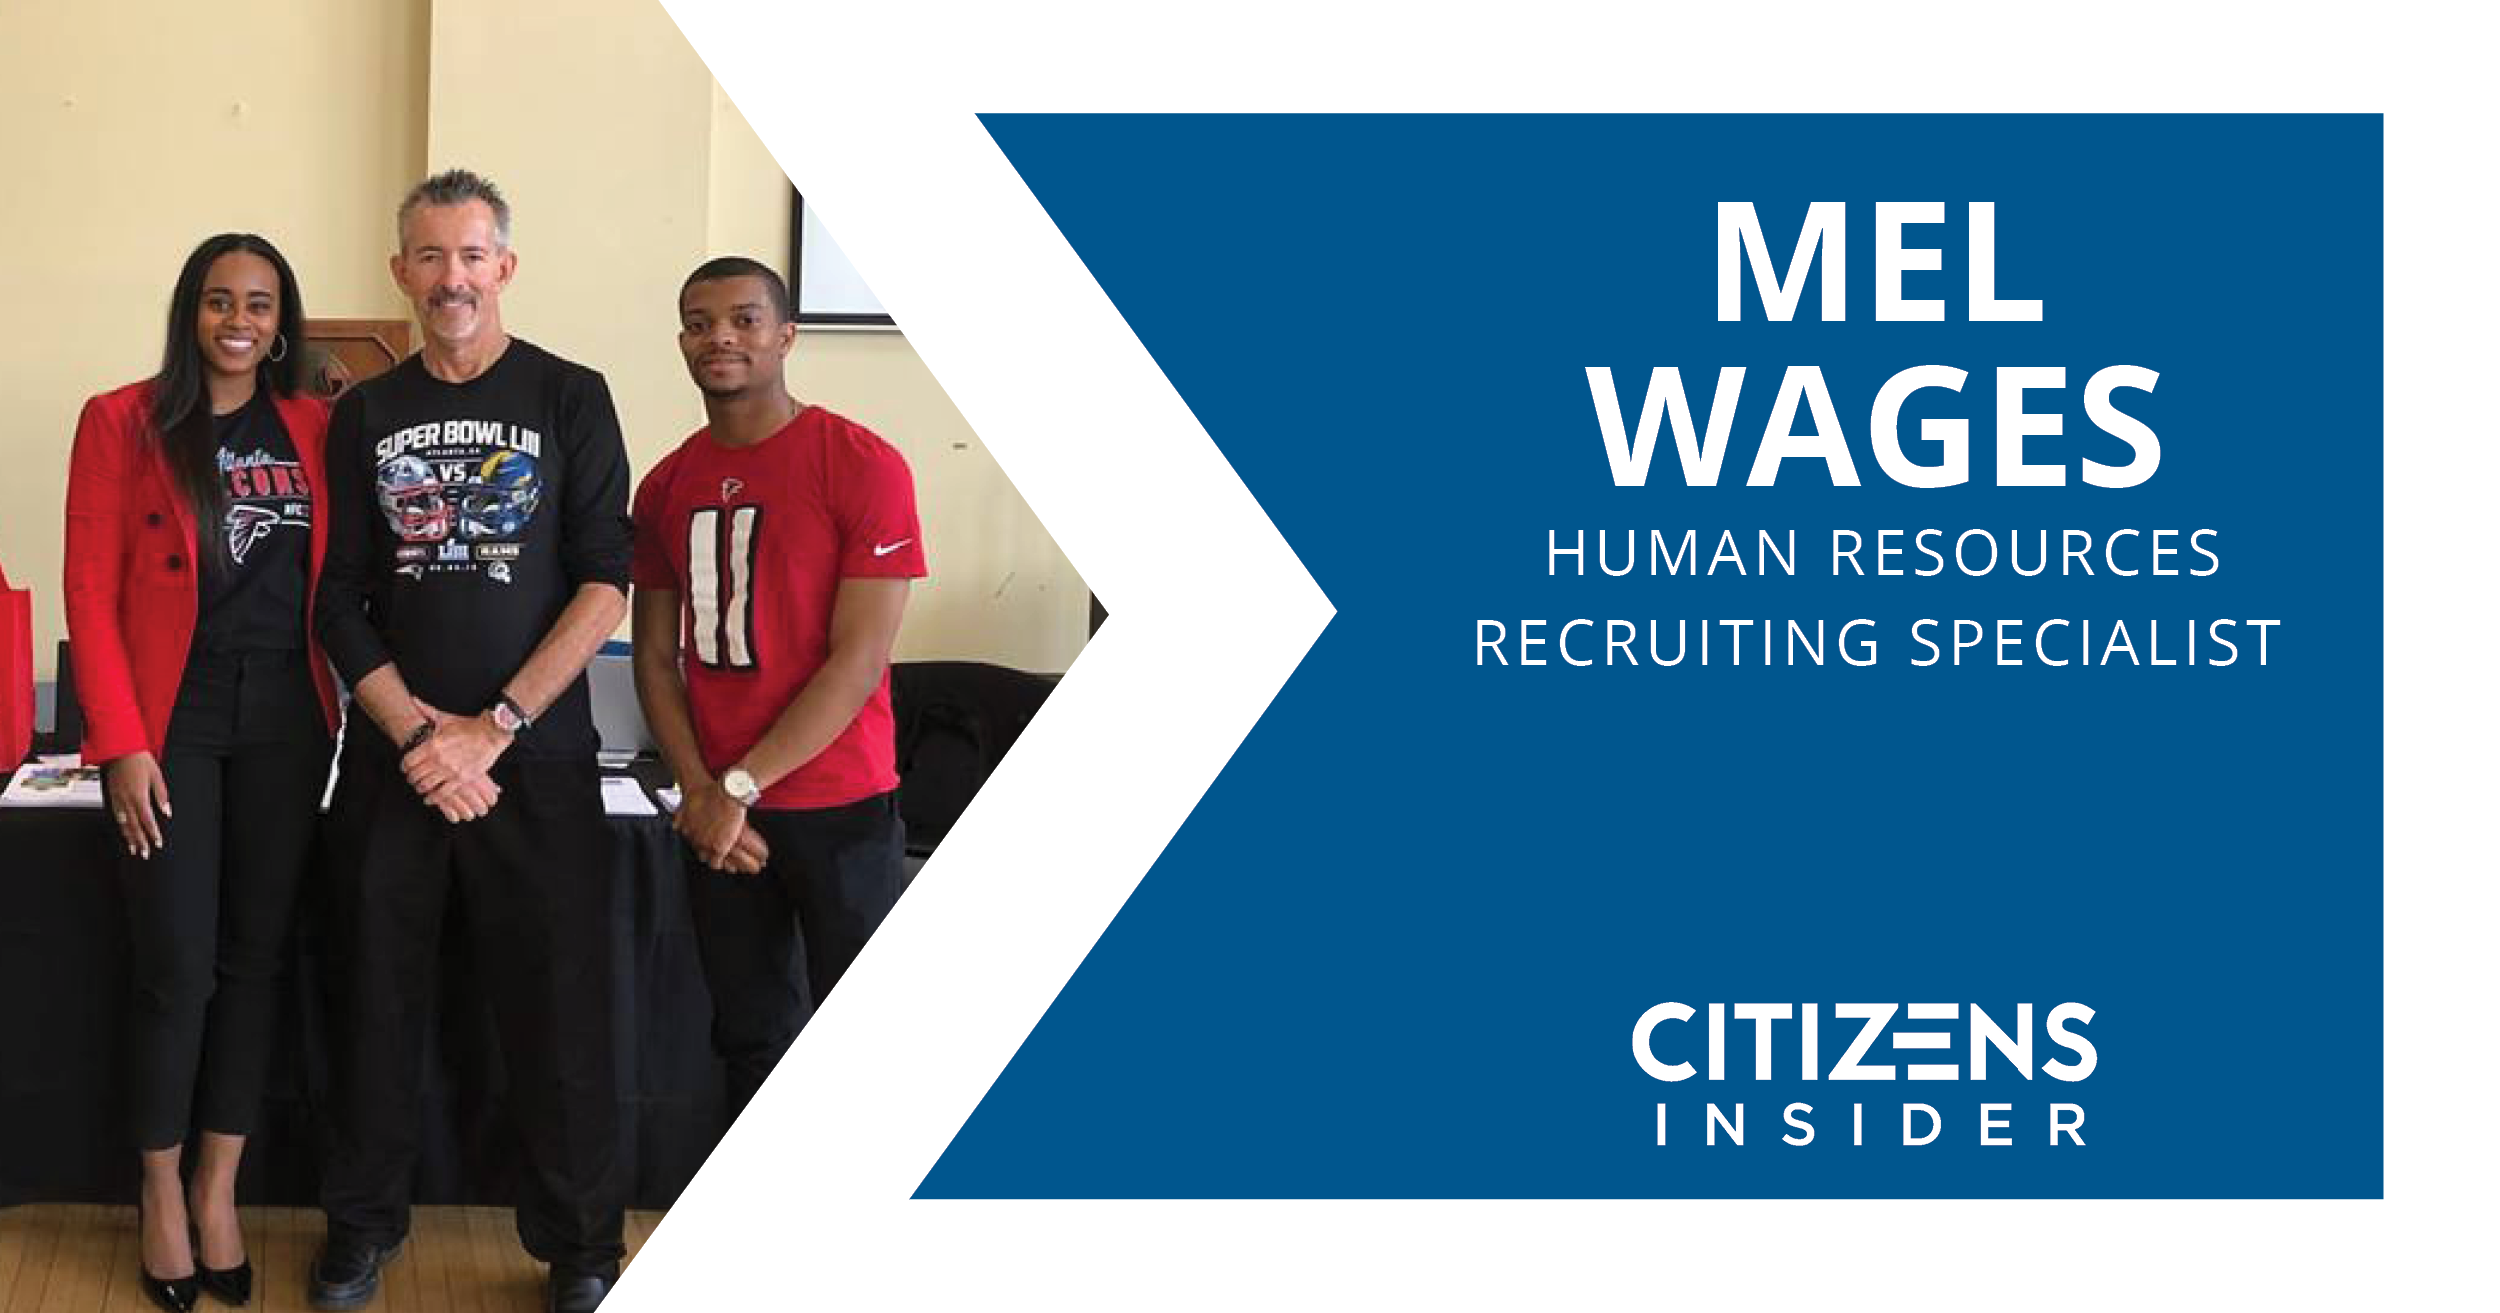 Citizens Insider: Mel Wages